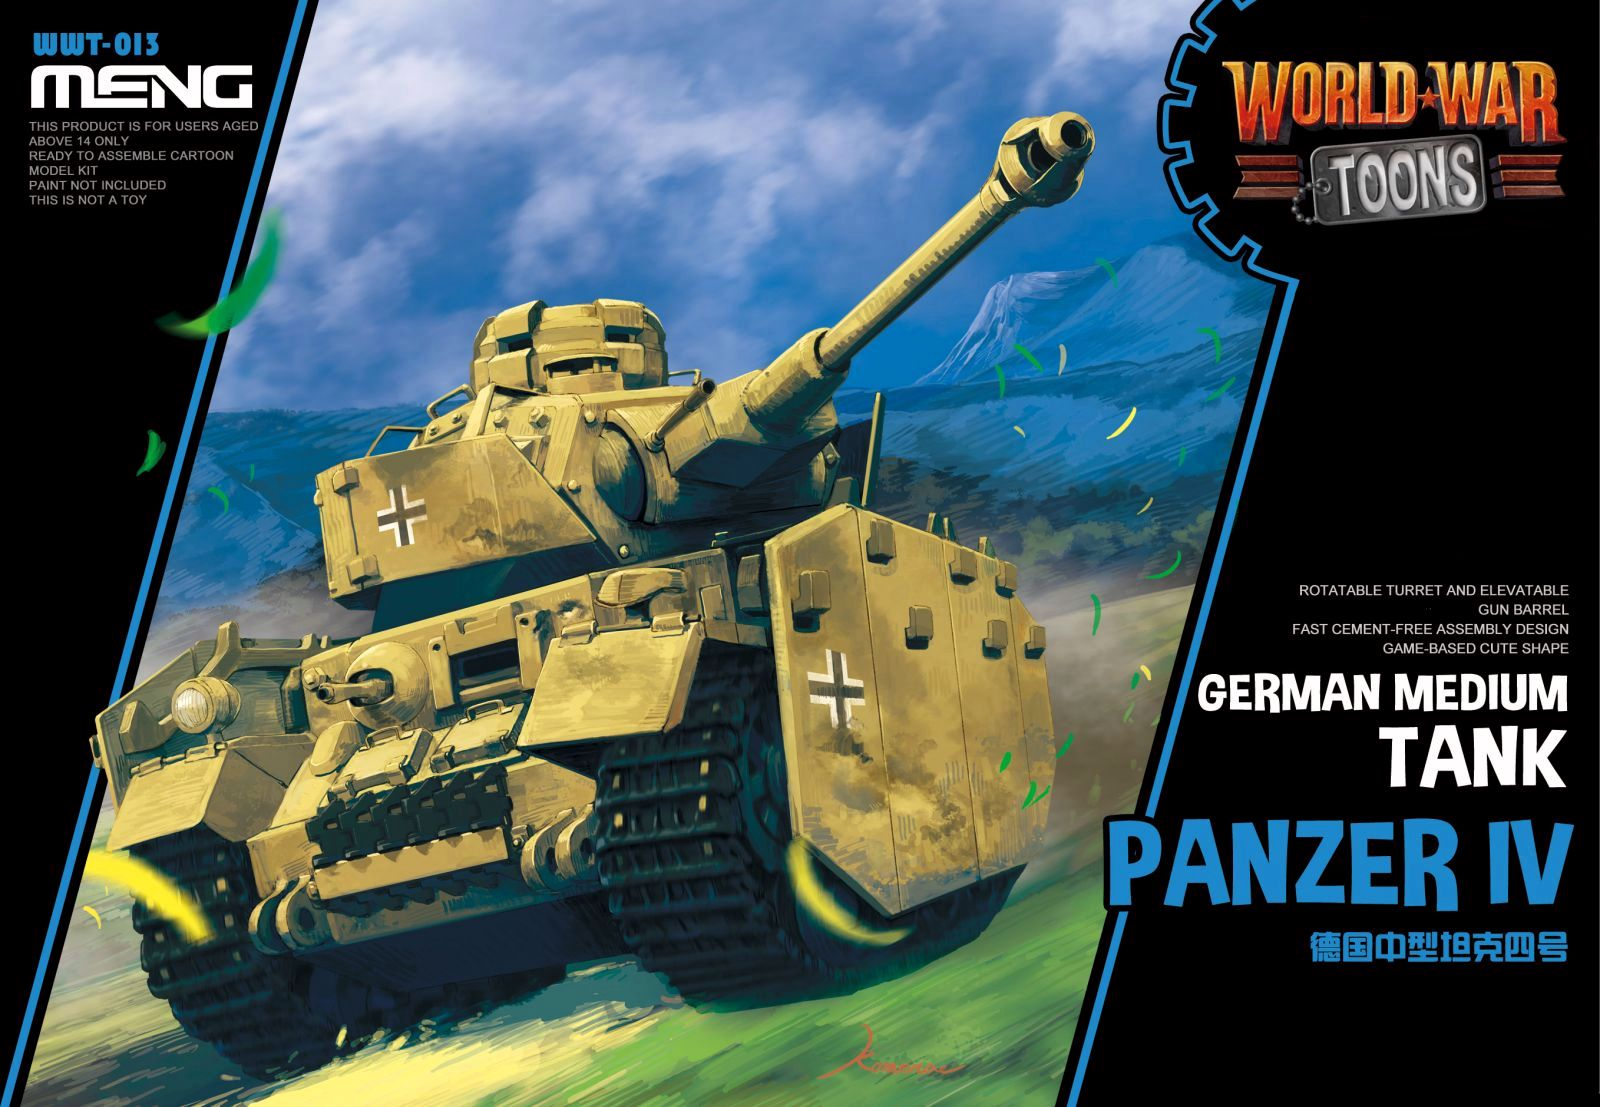 German Medium Tank Panzer IV (Cartoon model)